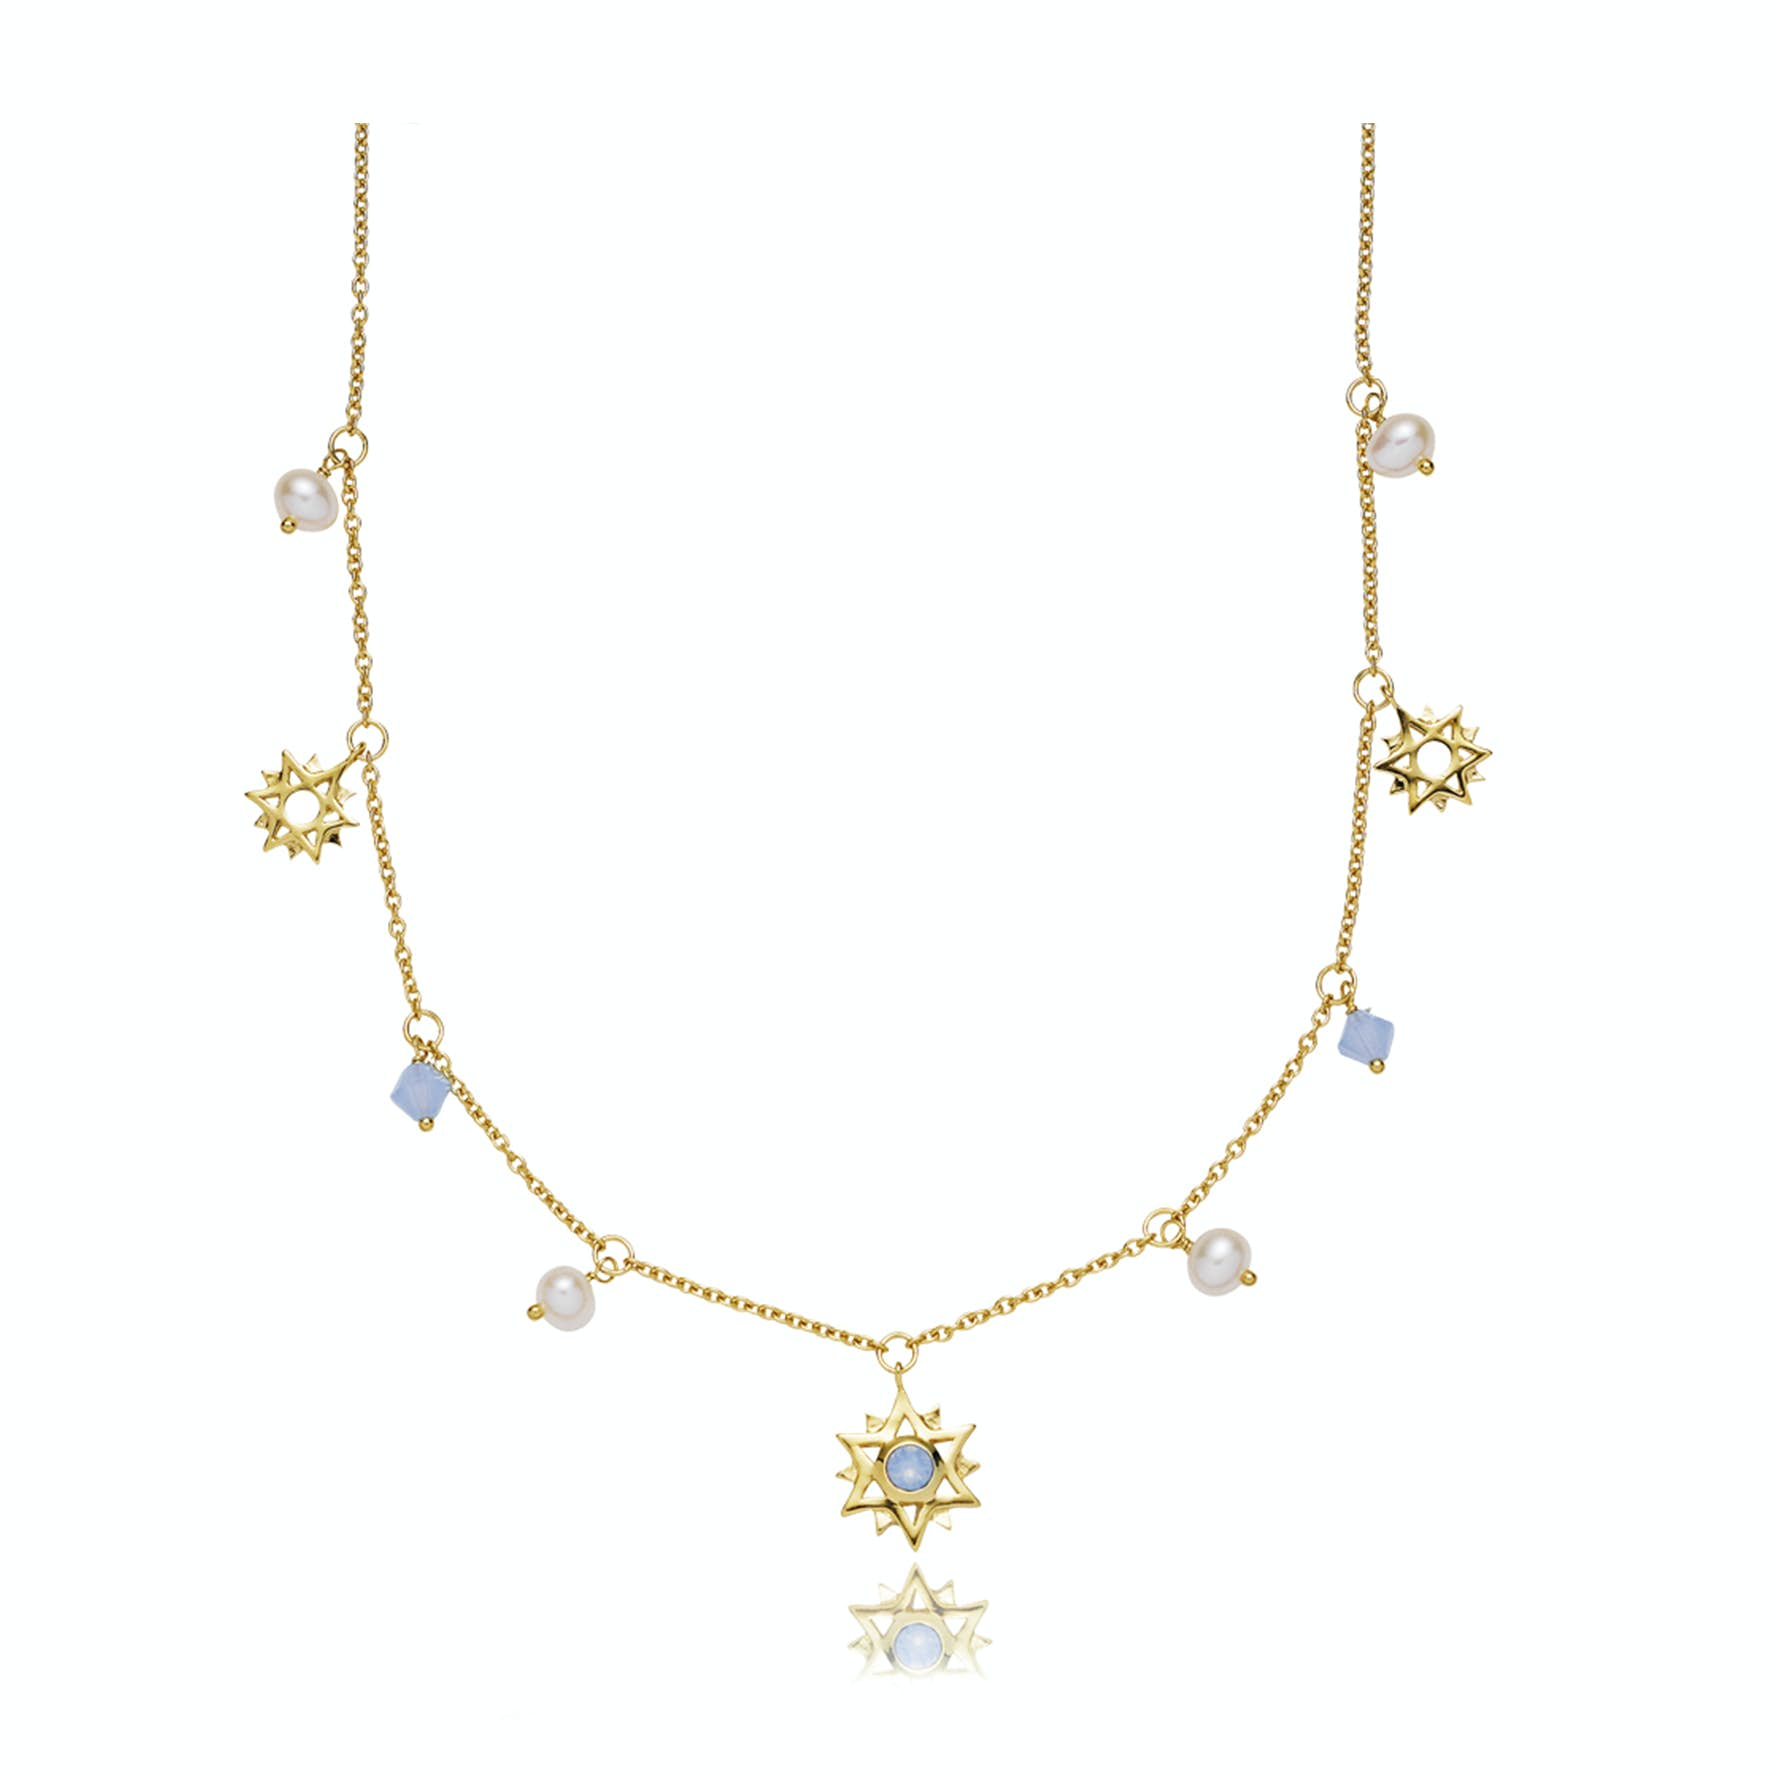 Olivia by Sistie Necklace from Sistie in Goldplated-Silver Sterling 925|Blank